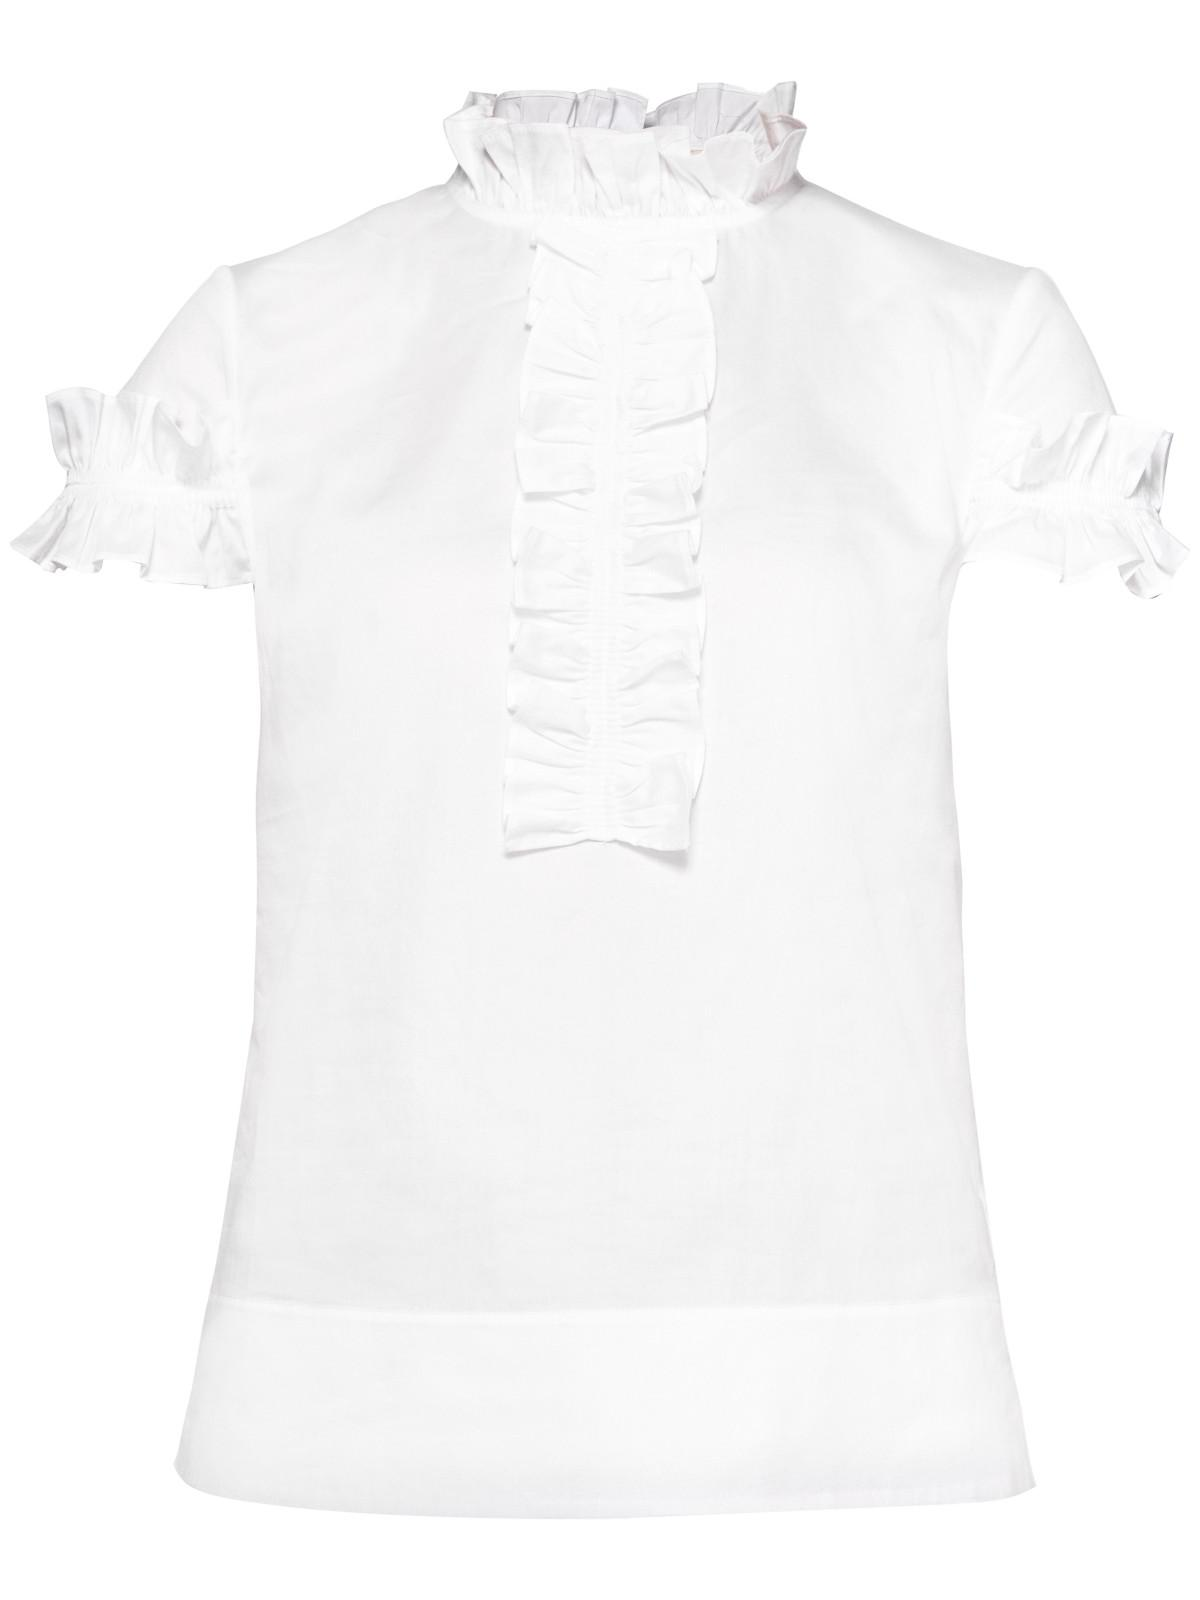 9ecdba4581bb07 Ted Baker Saidii Frill Detail Cotton Blouse in White - Lyst